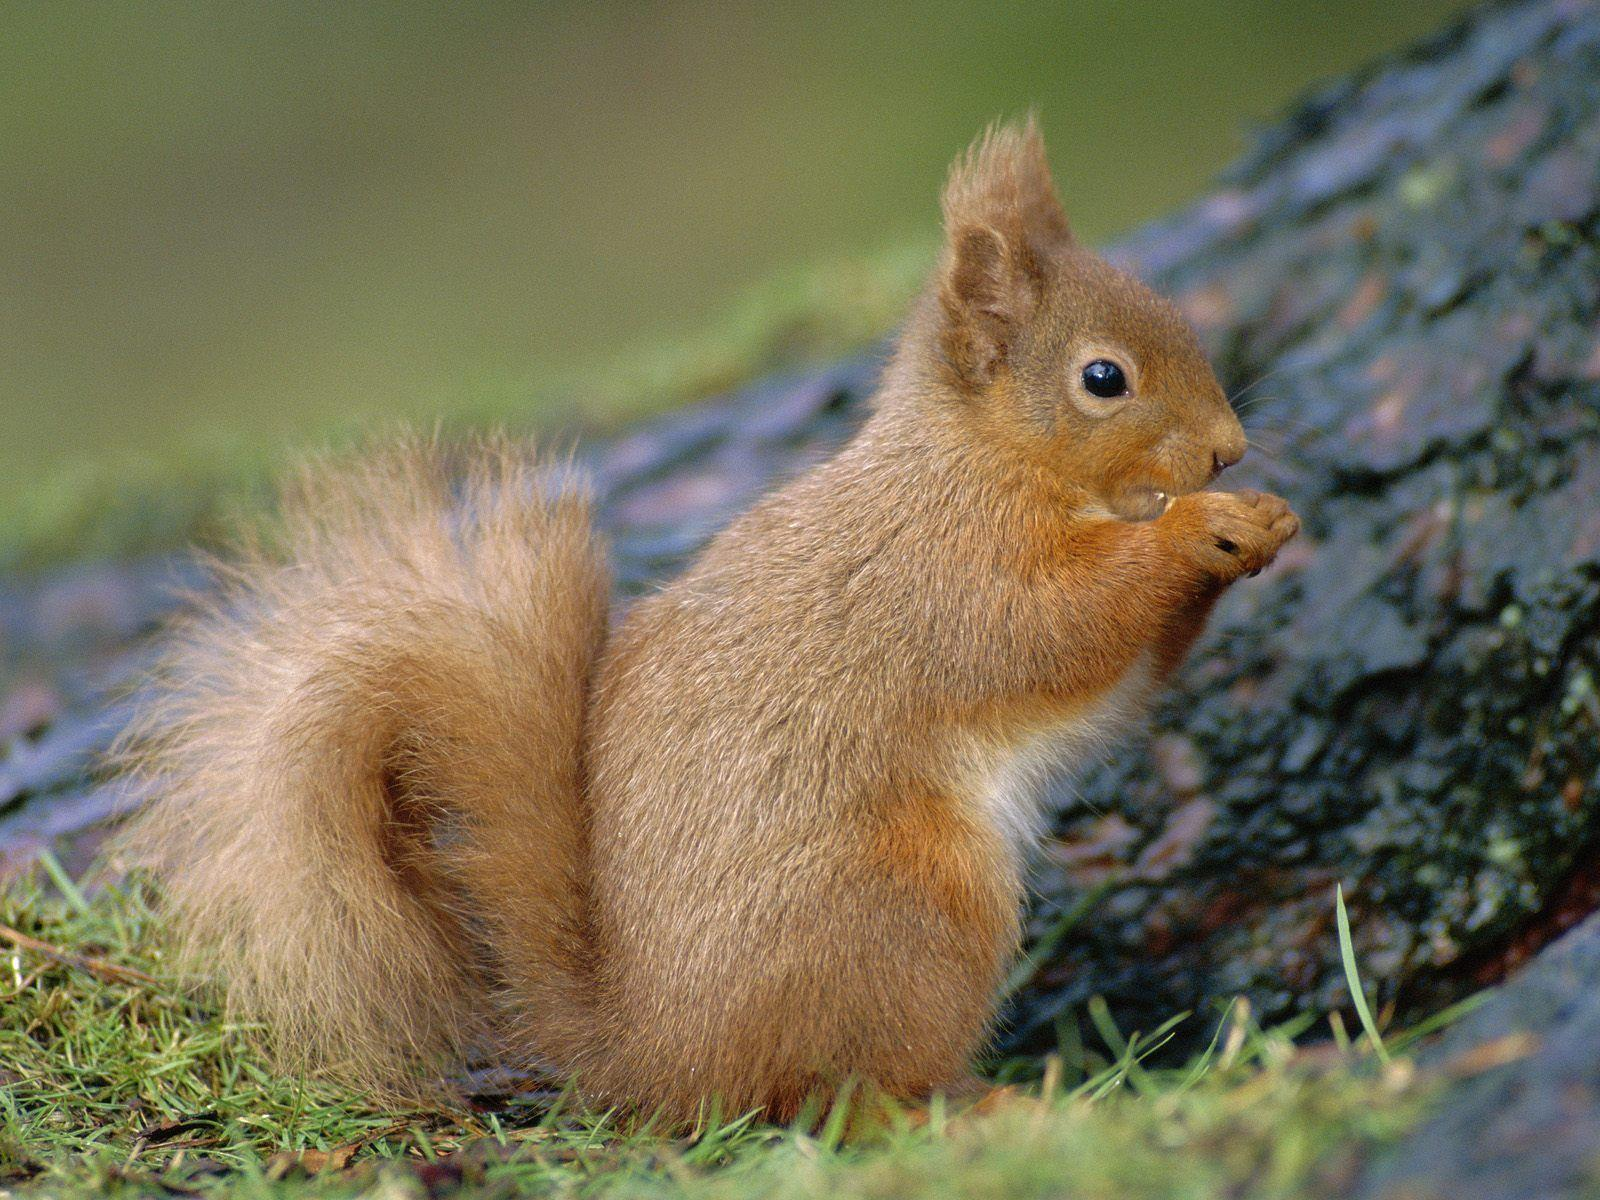 Squirrel Wallpapers 16241 1920x1200 px